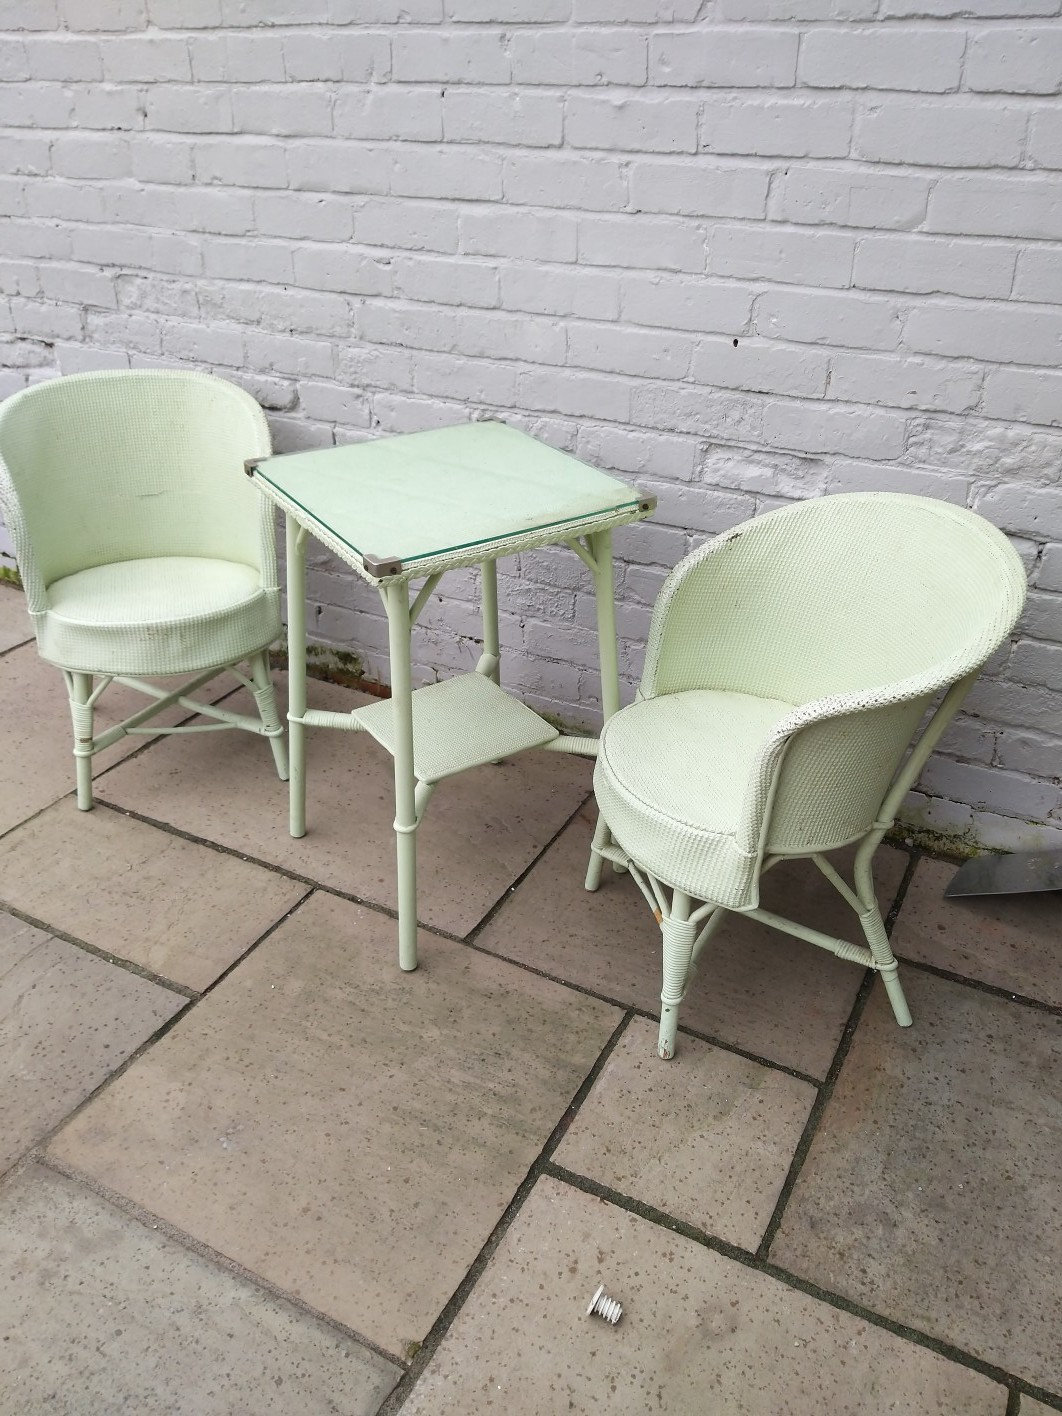 second hand garden furniture buy and sell preloved rh preloved co uk